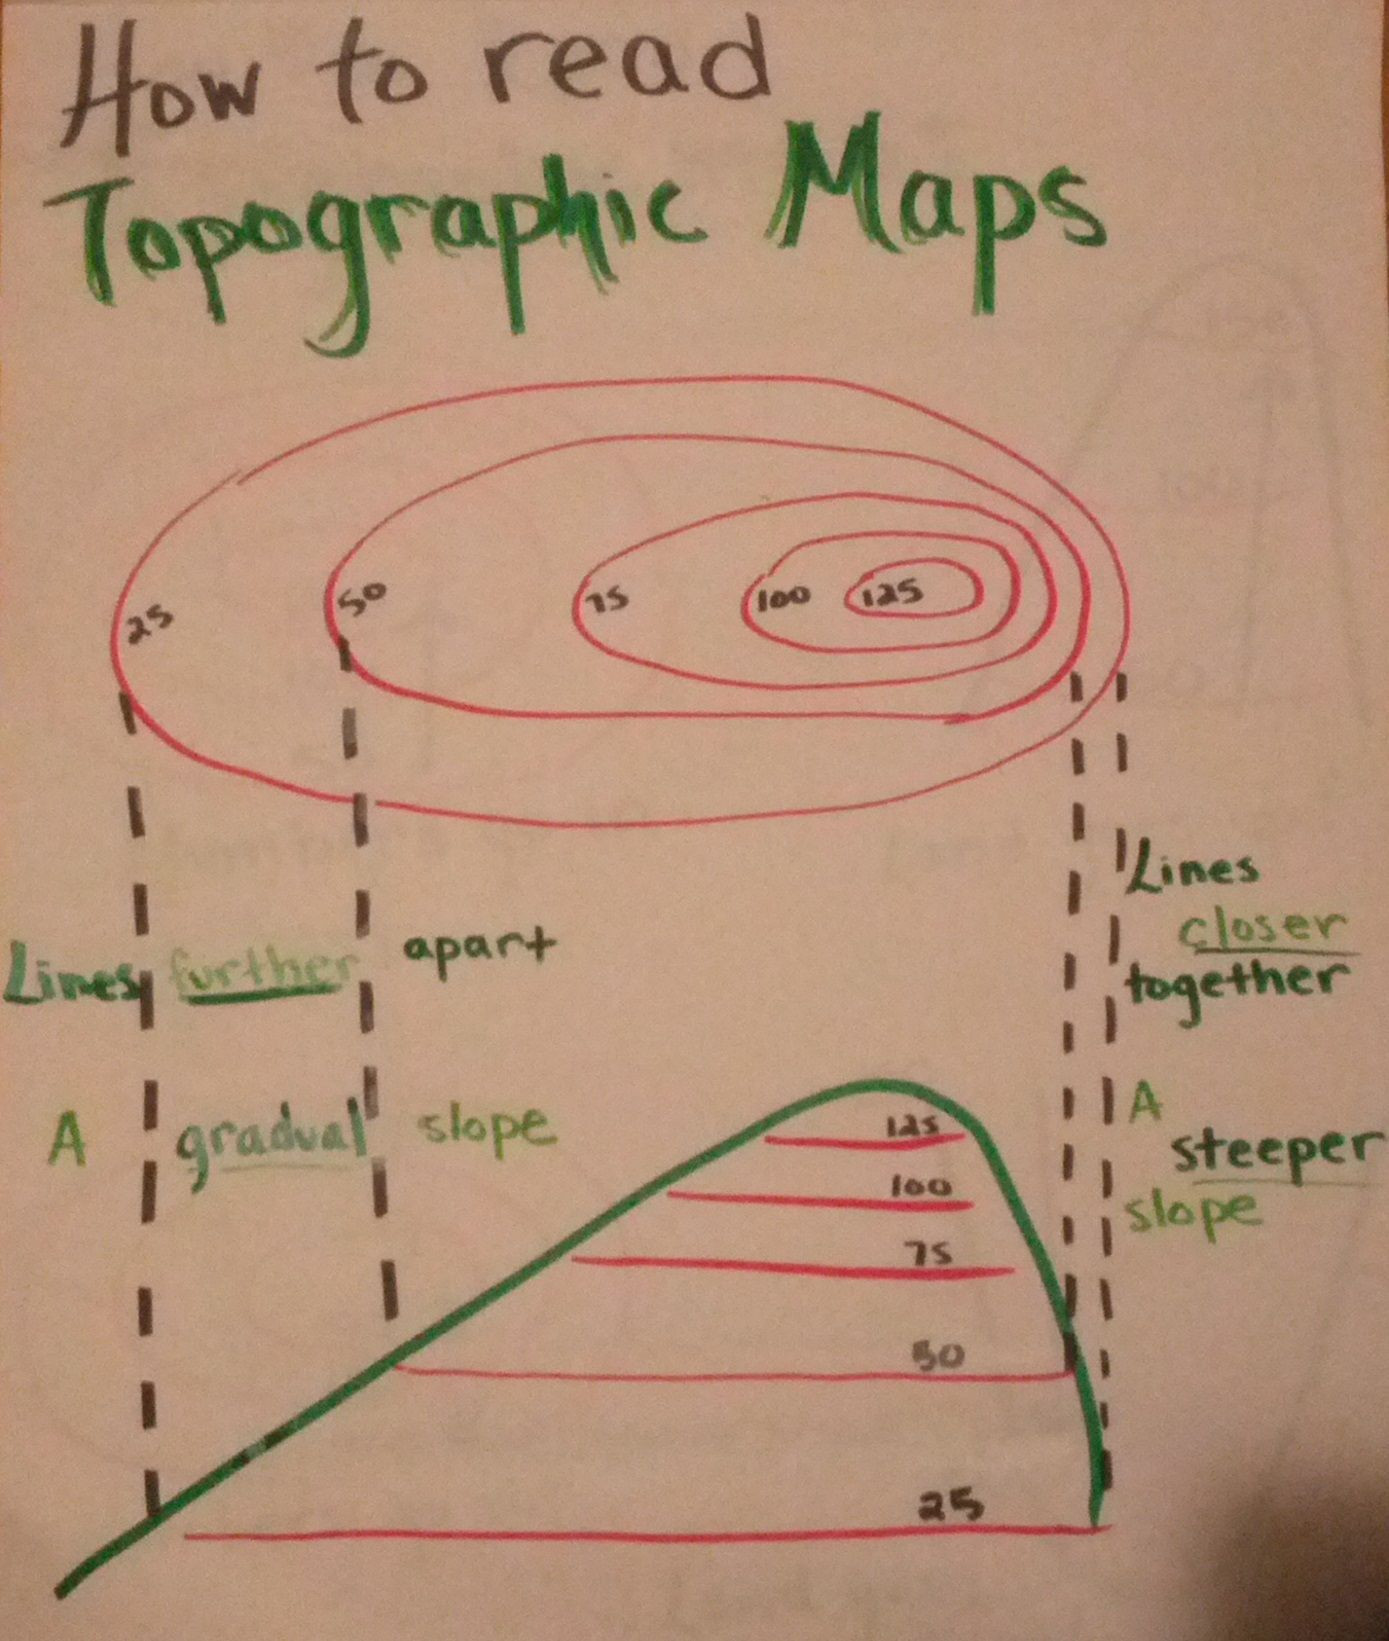 Topographic Map Worksheet Middle School How to Read topographic Maps Anchor Chart I Made Helps